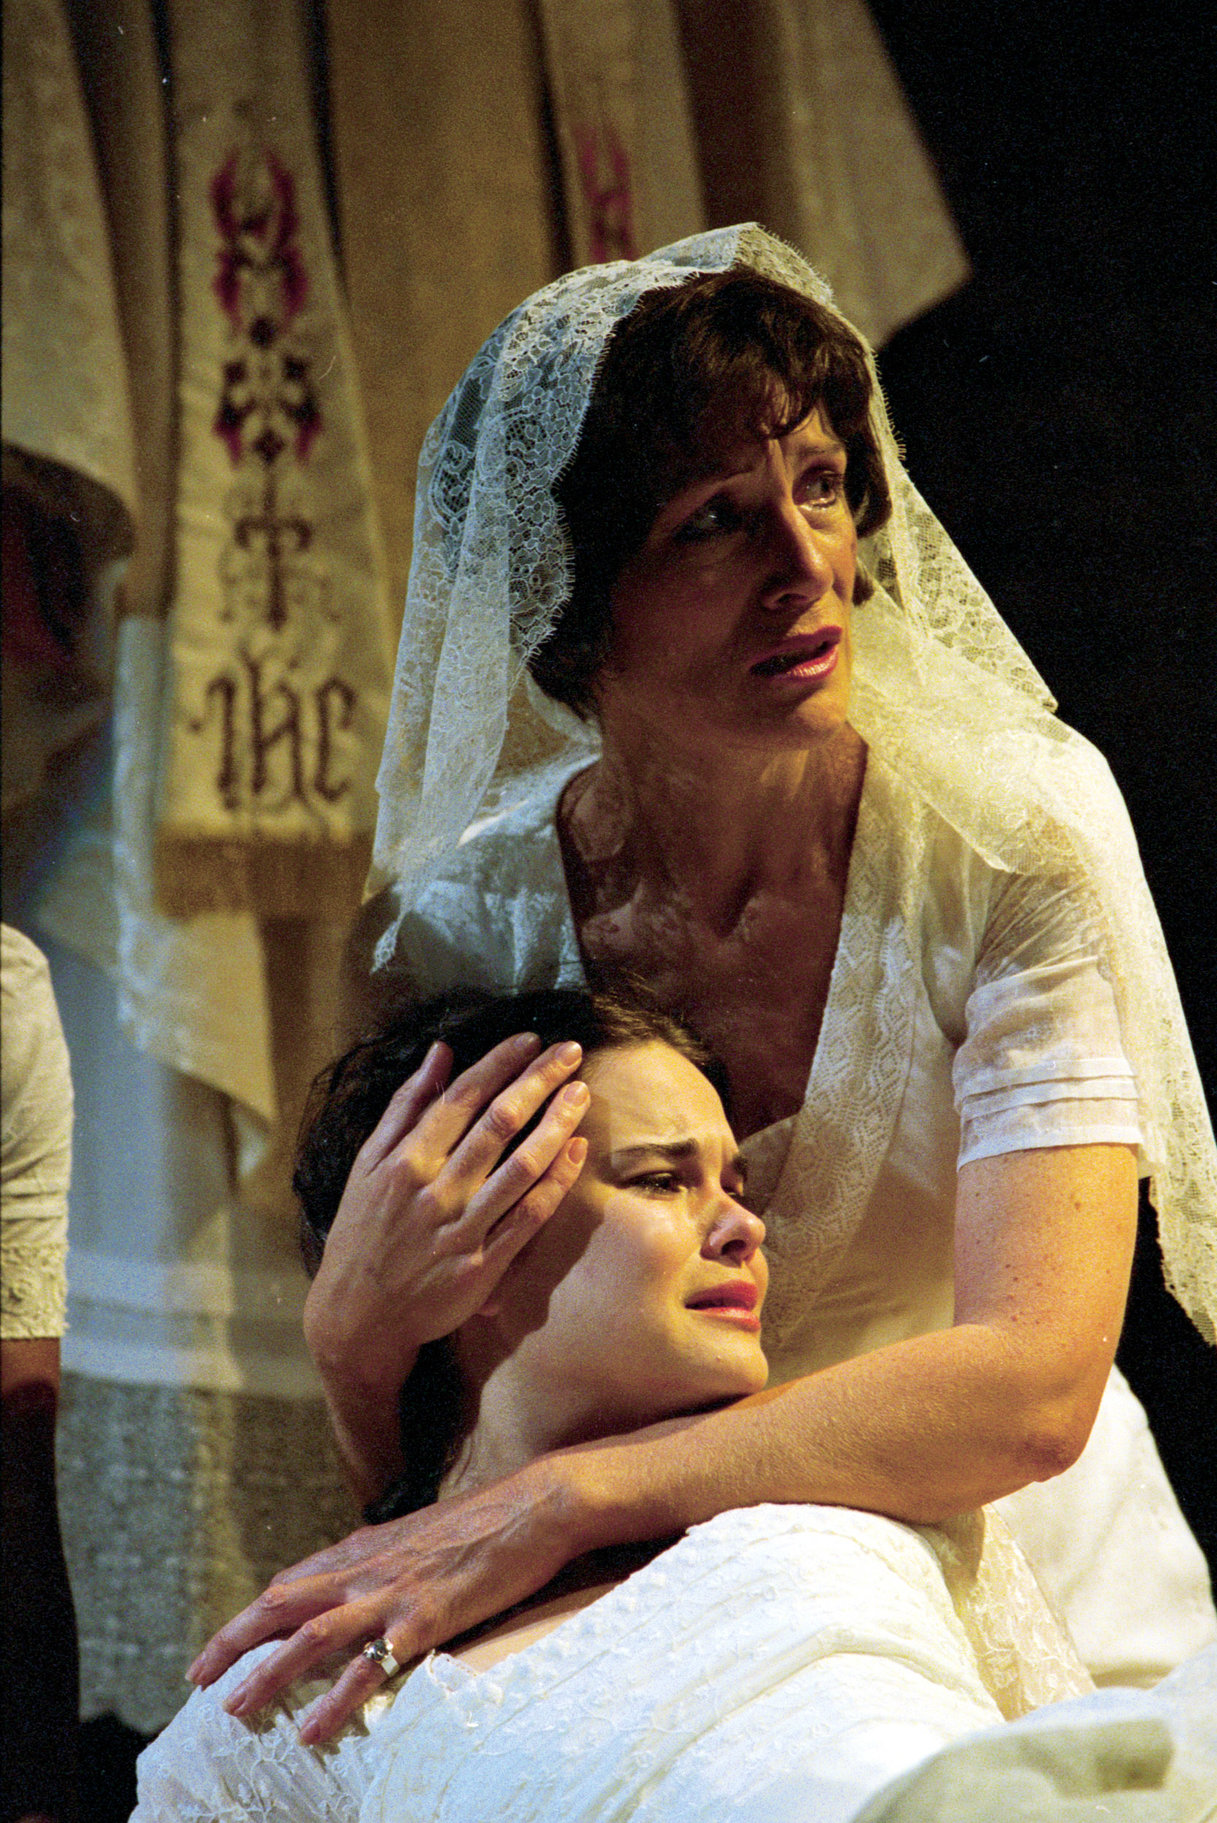 A woman in white comforts a crying woman.